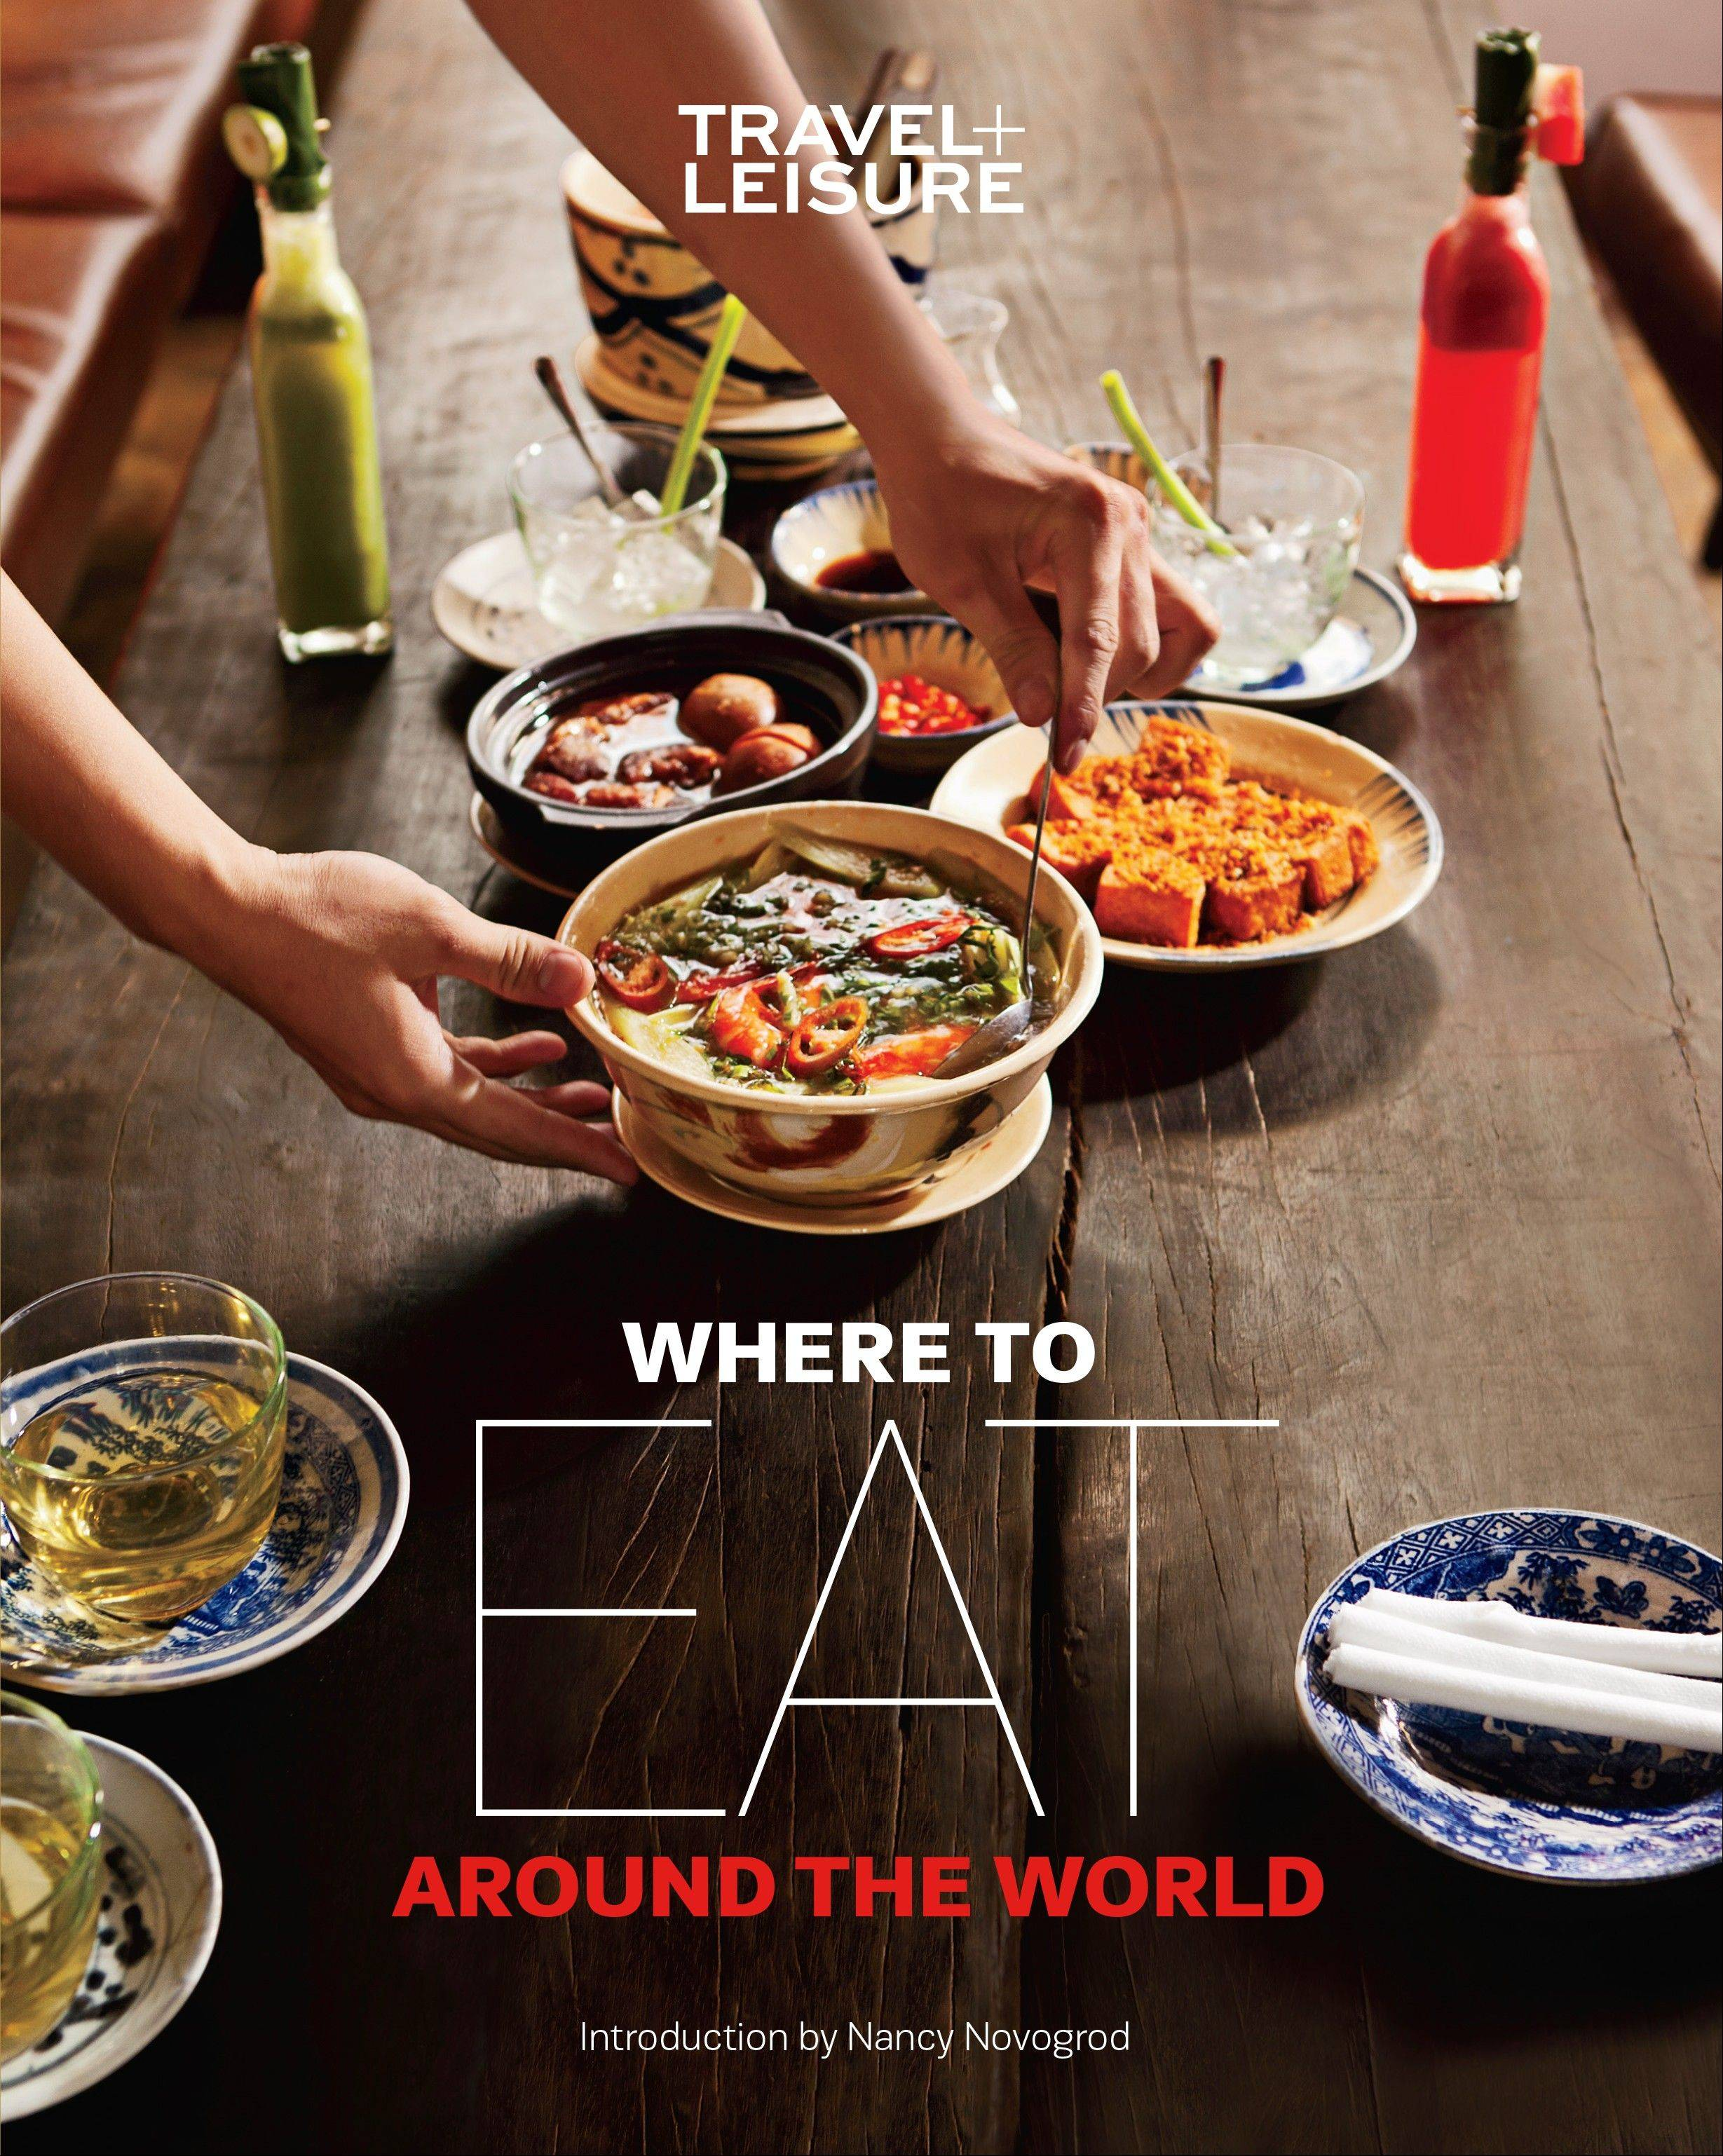 �Where to Eat Around the World� spotlights food in 27 destinations, from the lunch canteens and taverns of Istanbul to barbecue in Texas. Many travelers are passionate about food, whether it�s enjoying that perfect meal on vacation or hunting down authentic local cuisine.